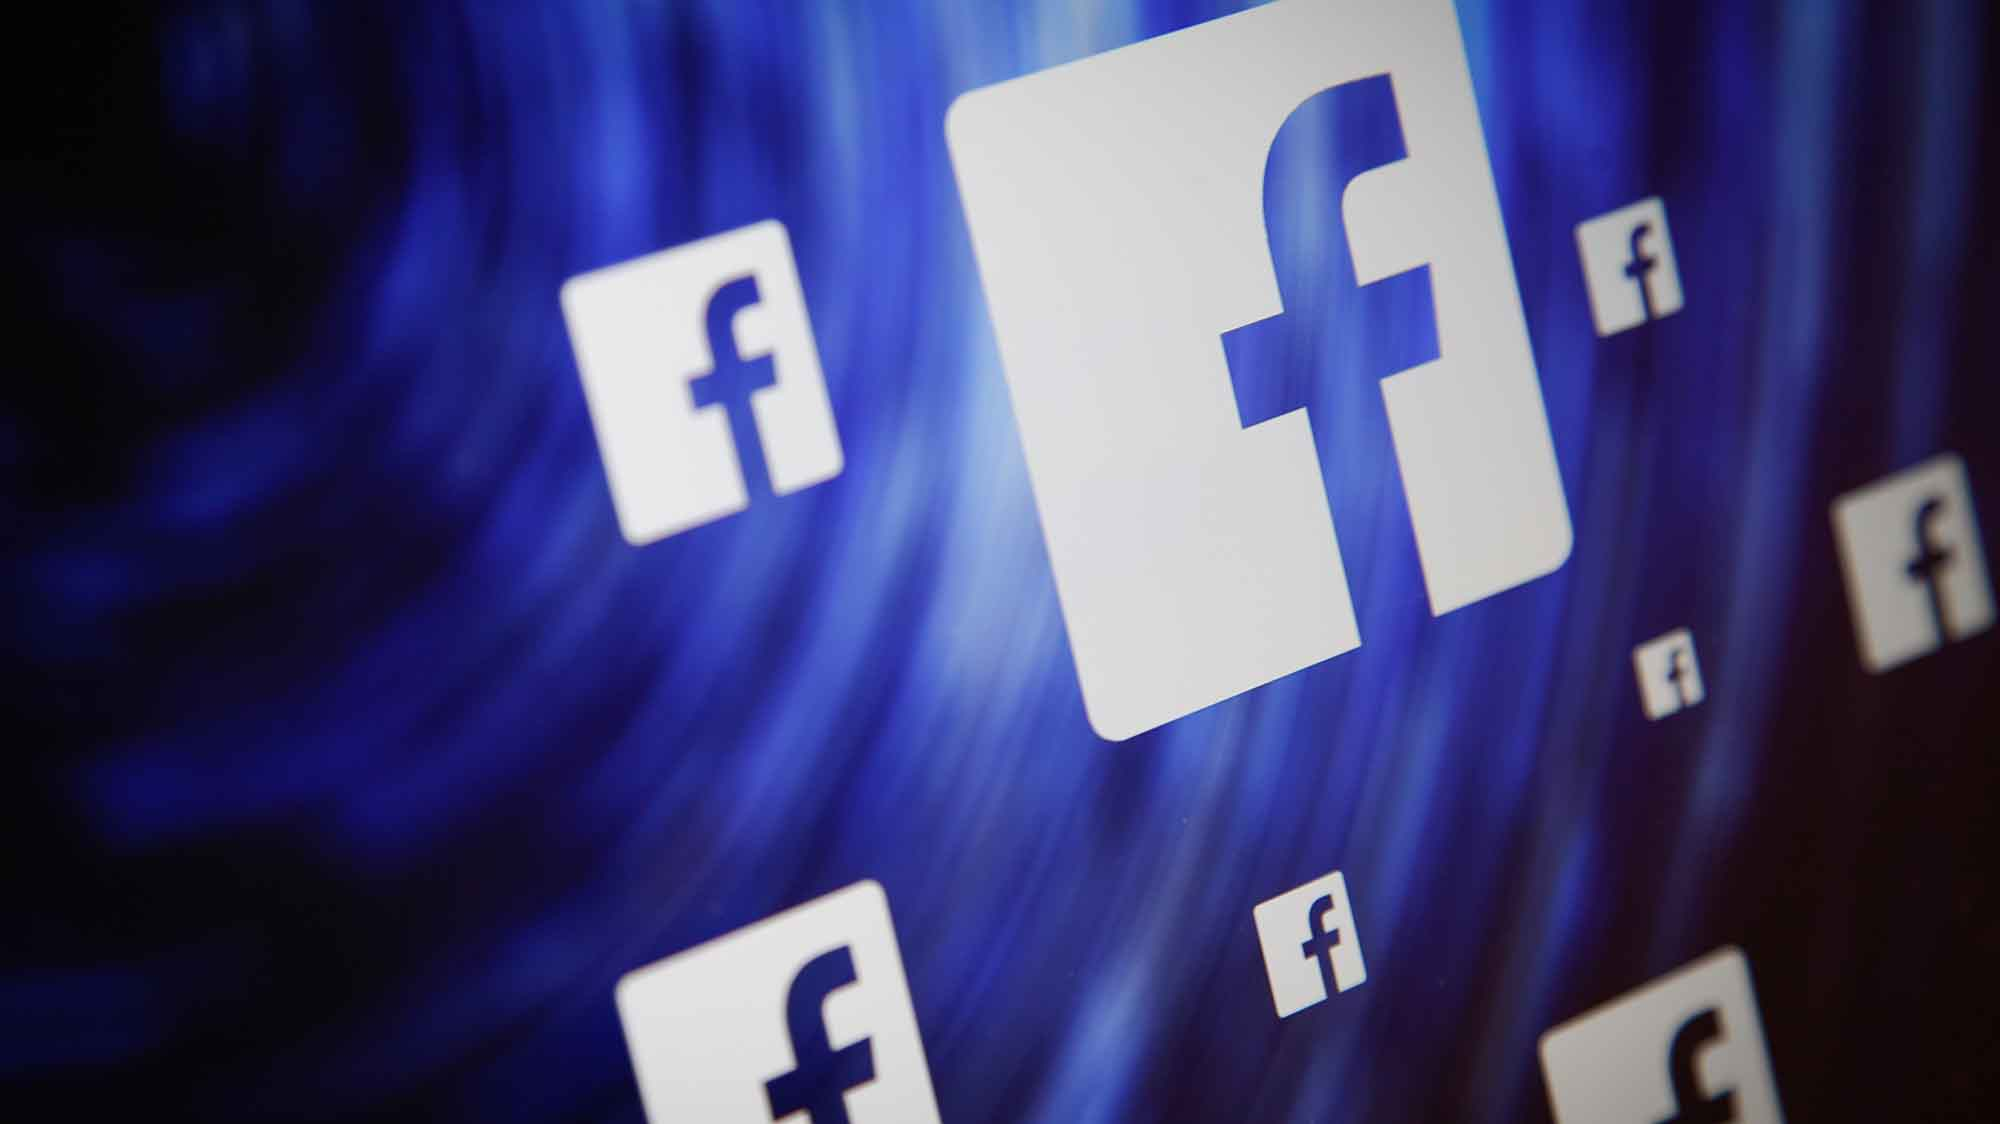 U.S. election agency seeks comment after Facebook cites Russian ads